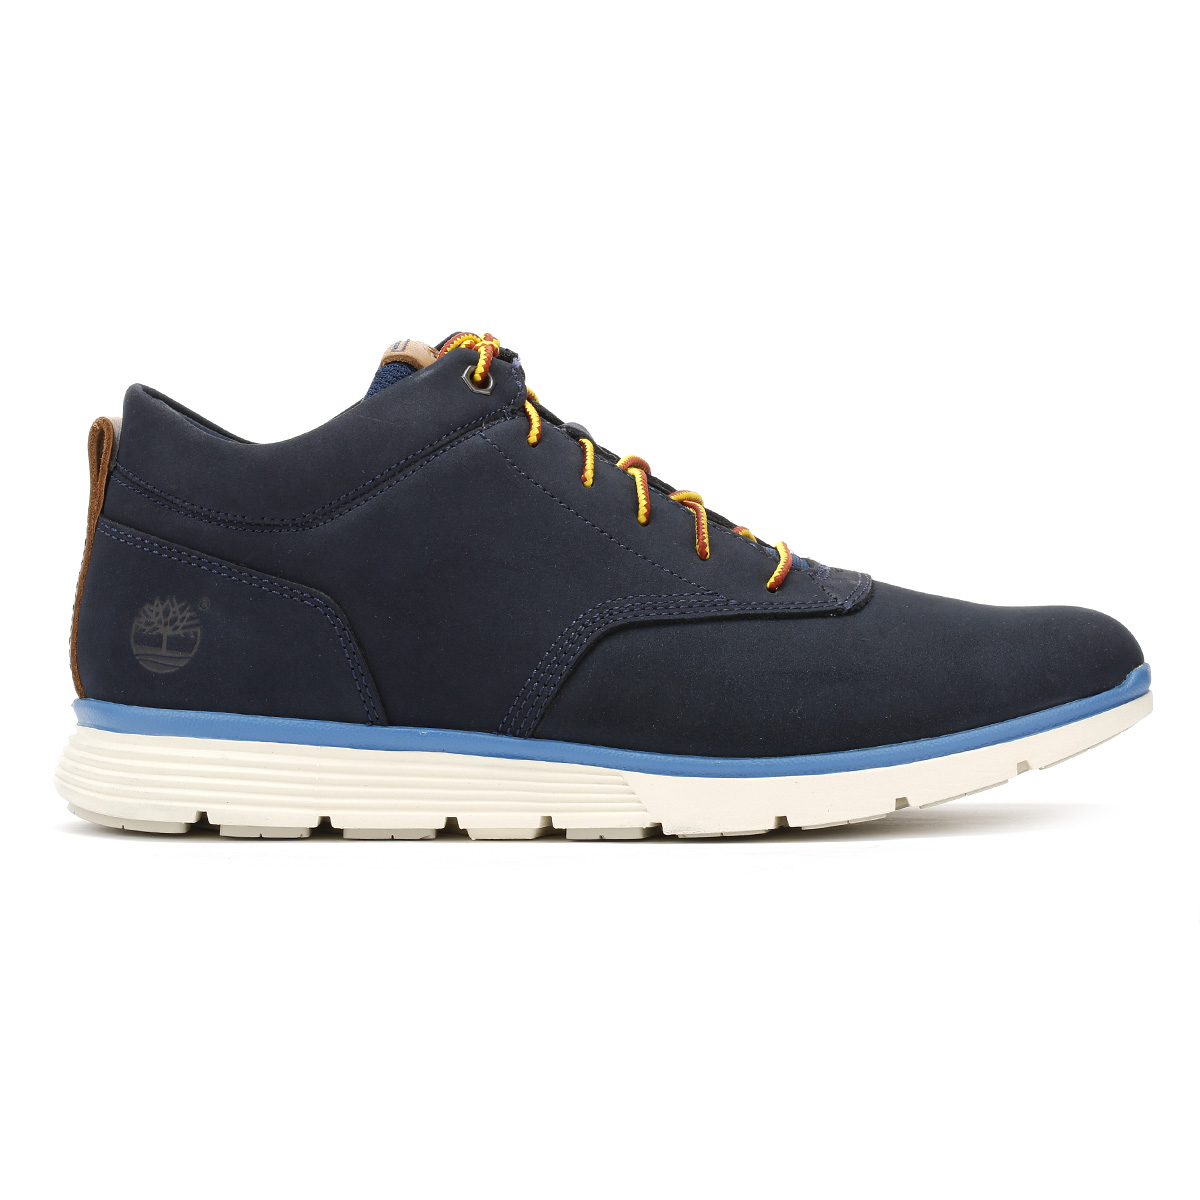 Timberland Mens Killington Shoes Black Iris Casual Ankle